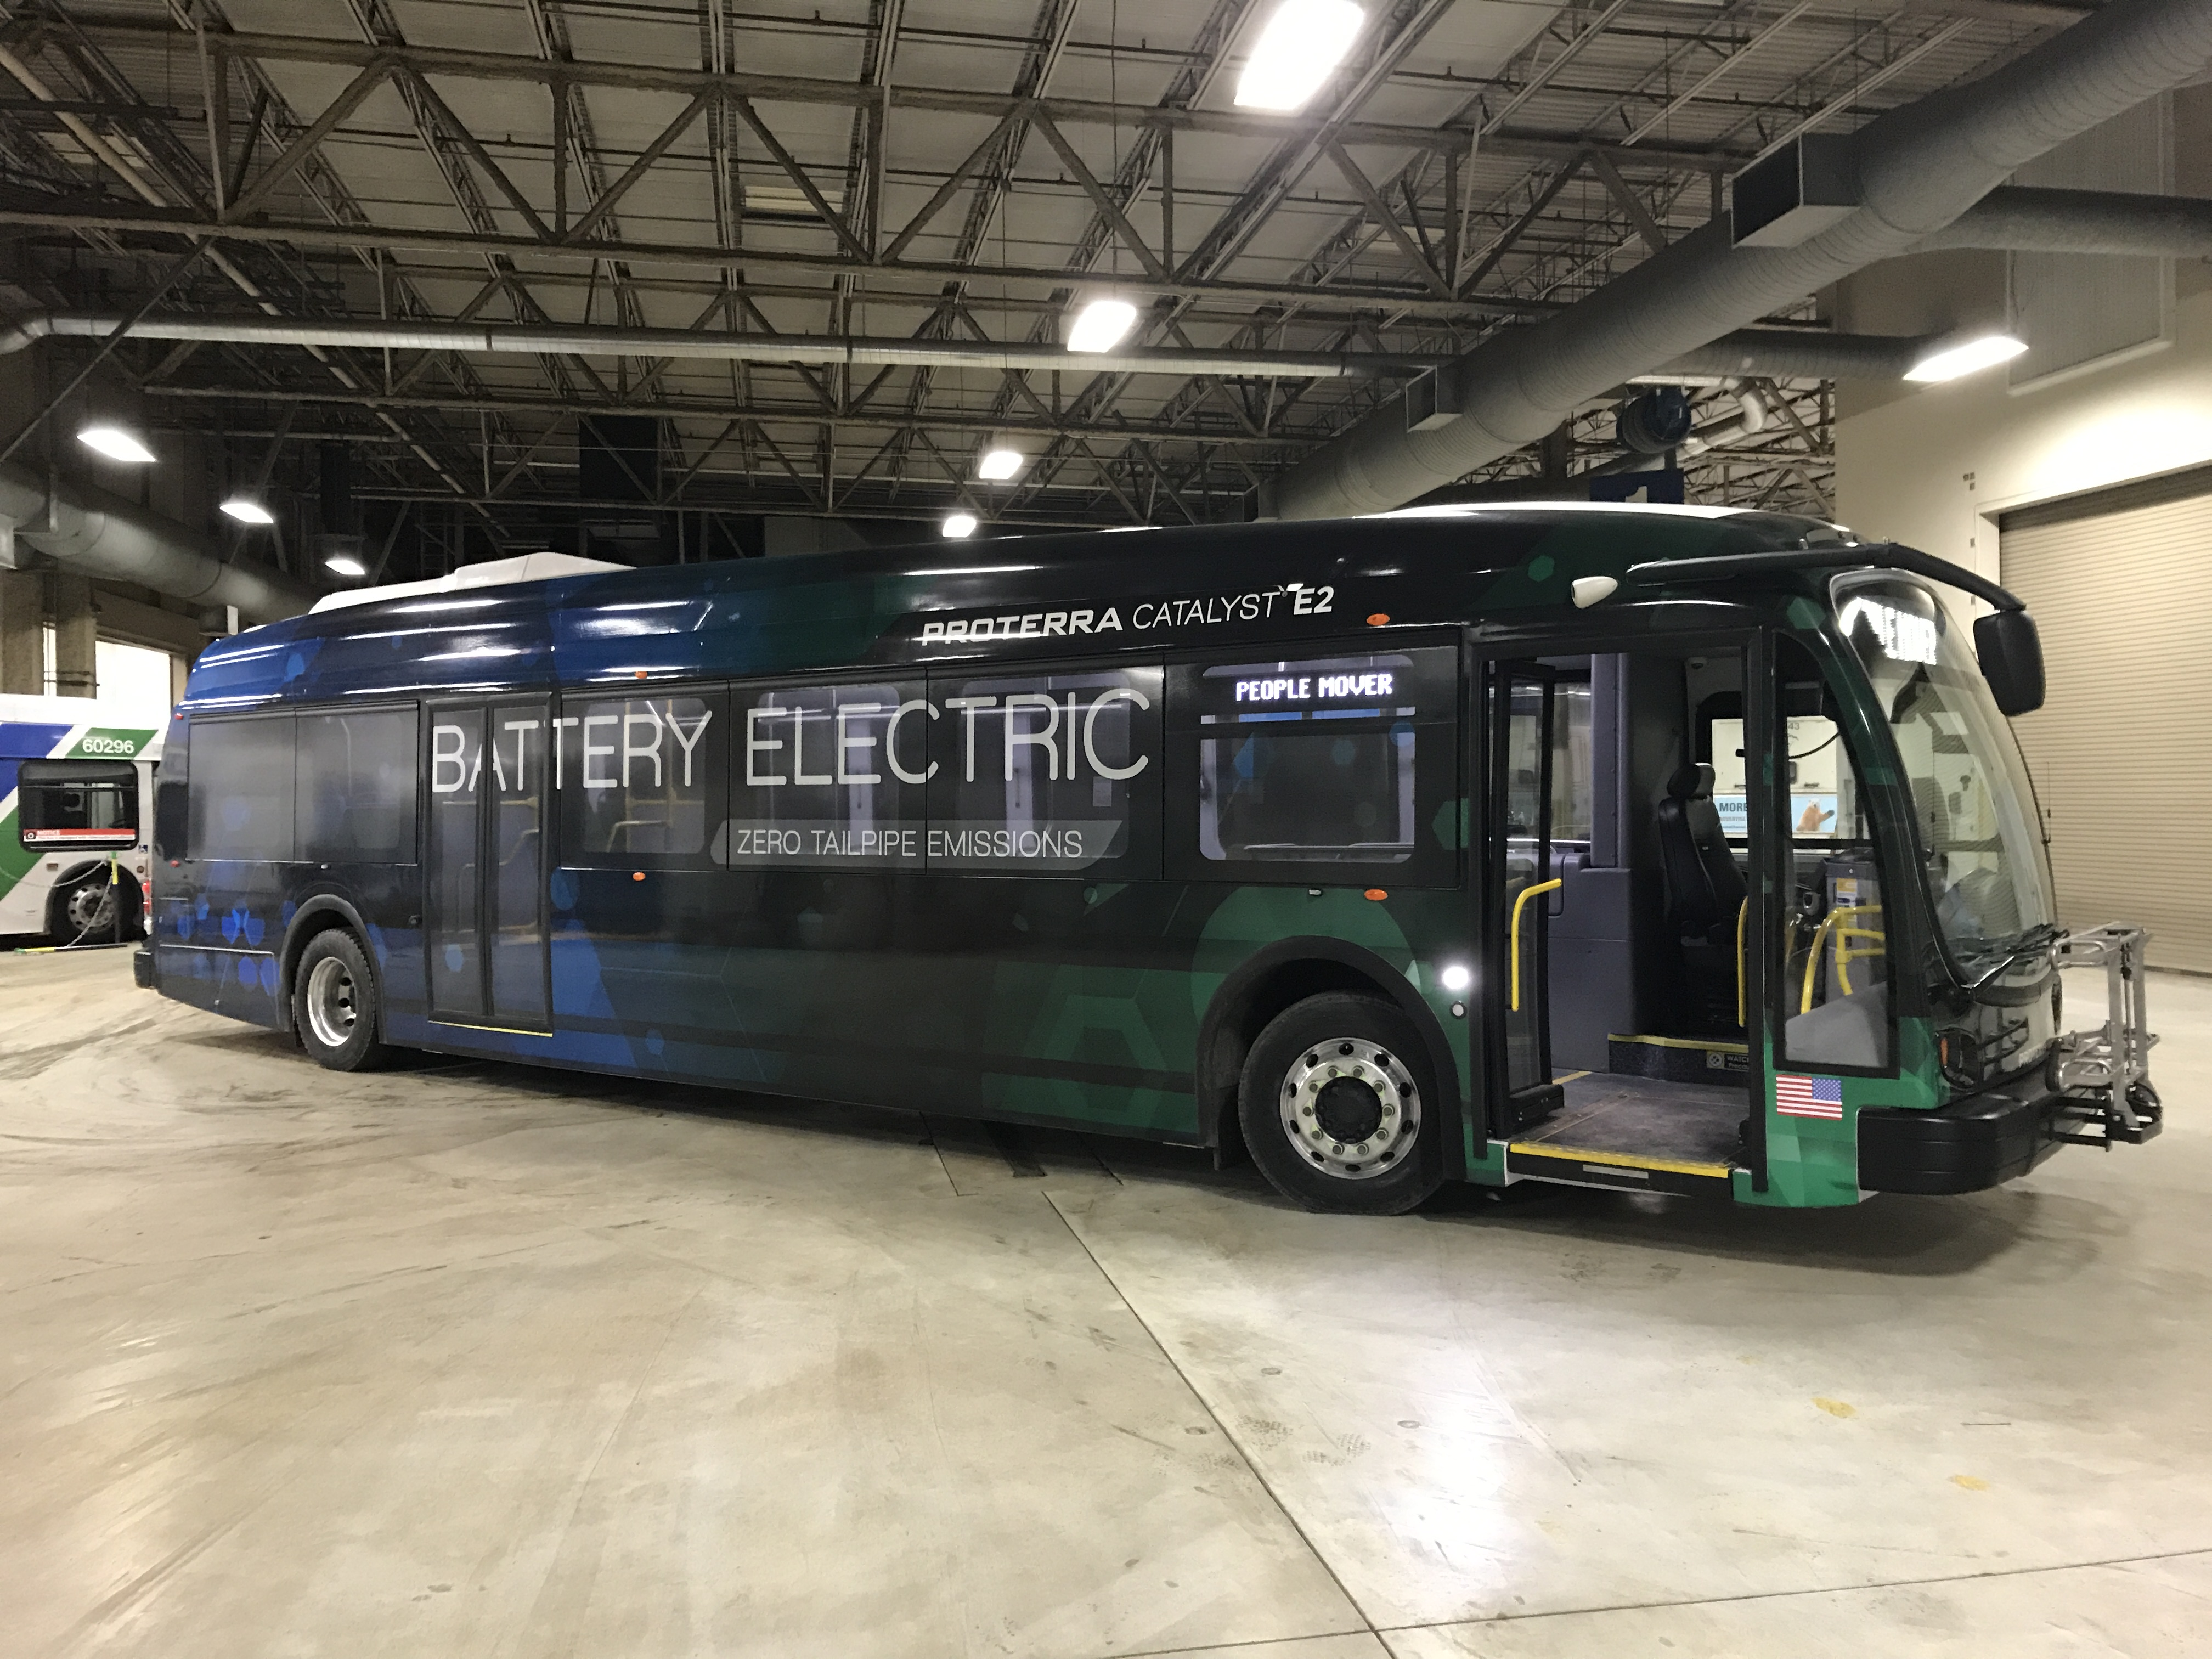 A Proterra Catalyst E2 electric bus, under lease to Anchorage's People Mover public transit system. (Photo by Casey Grove/Alaska Public Media)